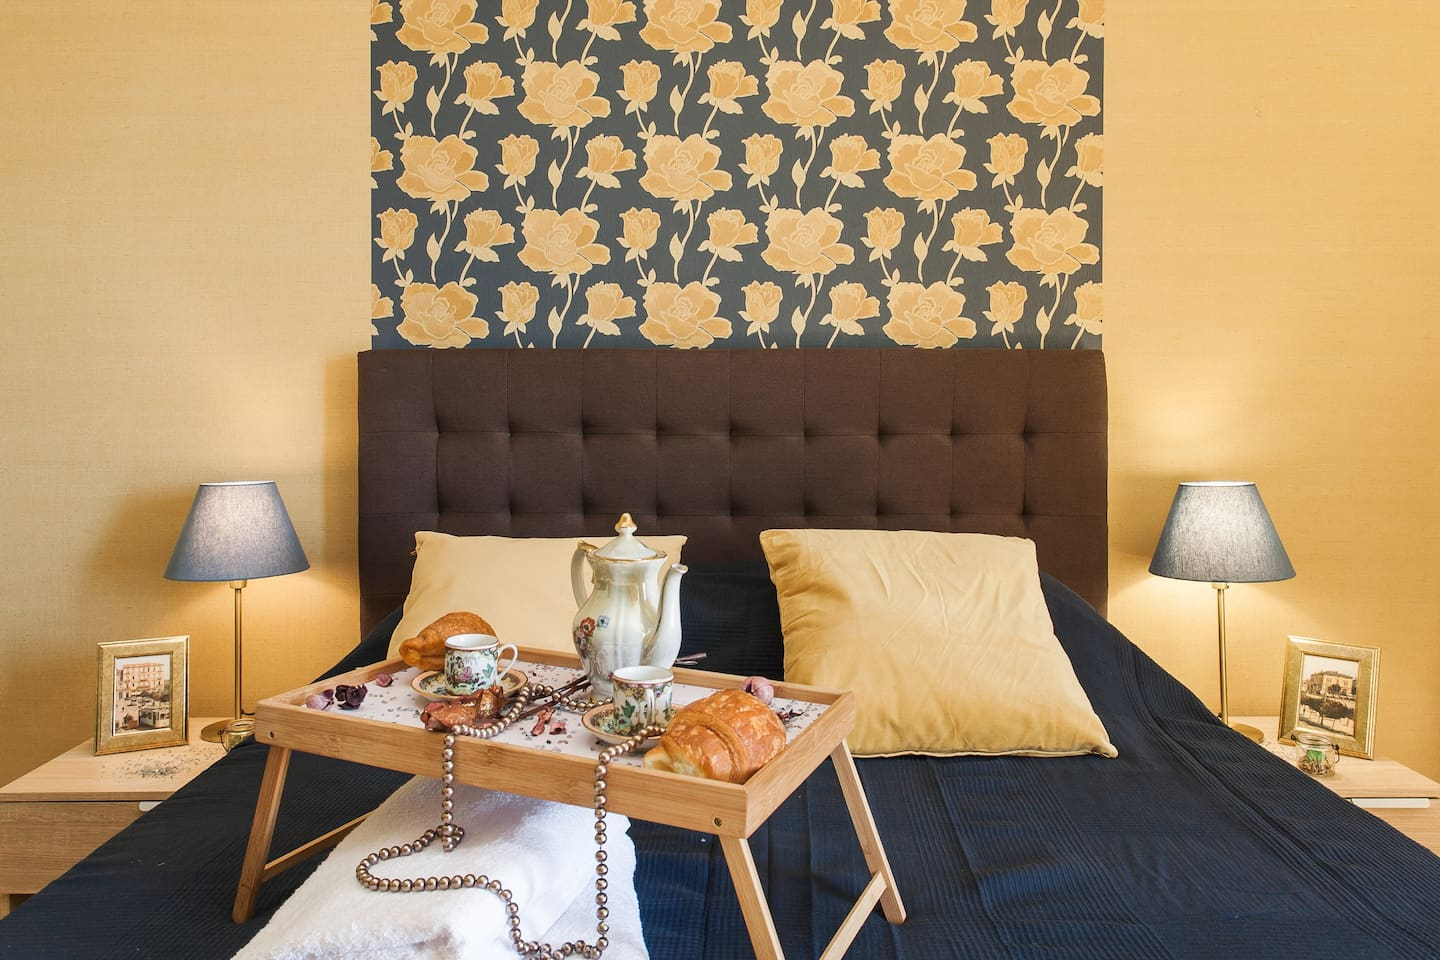 Your beautiful private bedroom, cozy bed and new interior:)